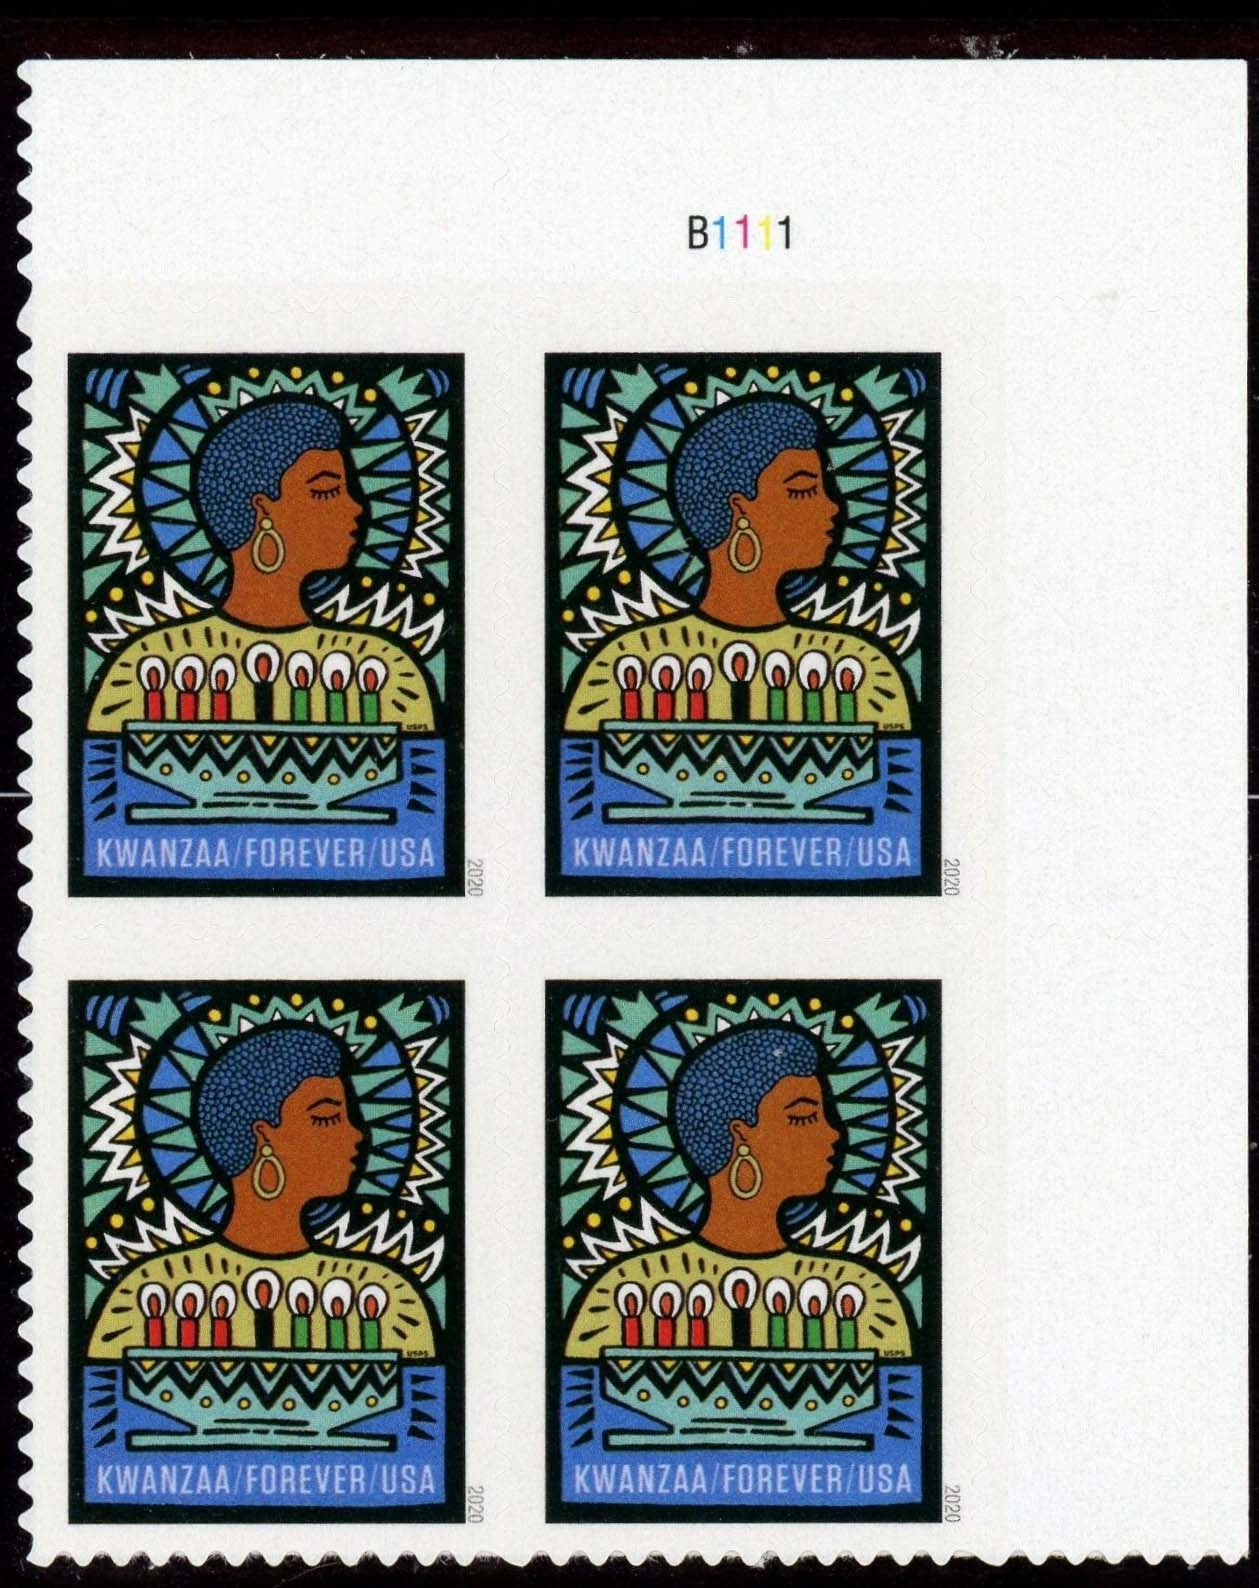 Scott #5530, Forever Plate Block of 4, Kwanzaa